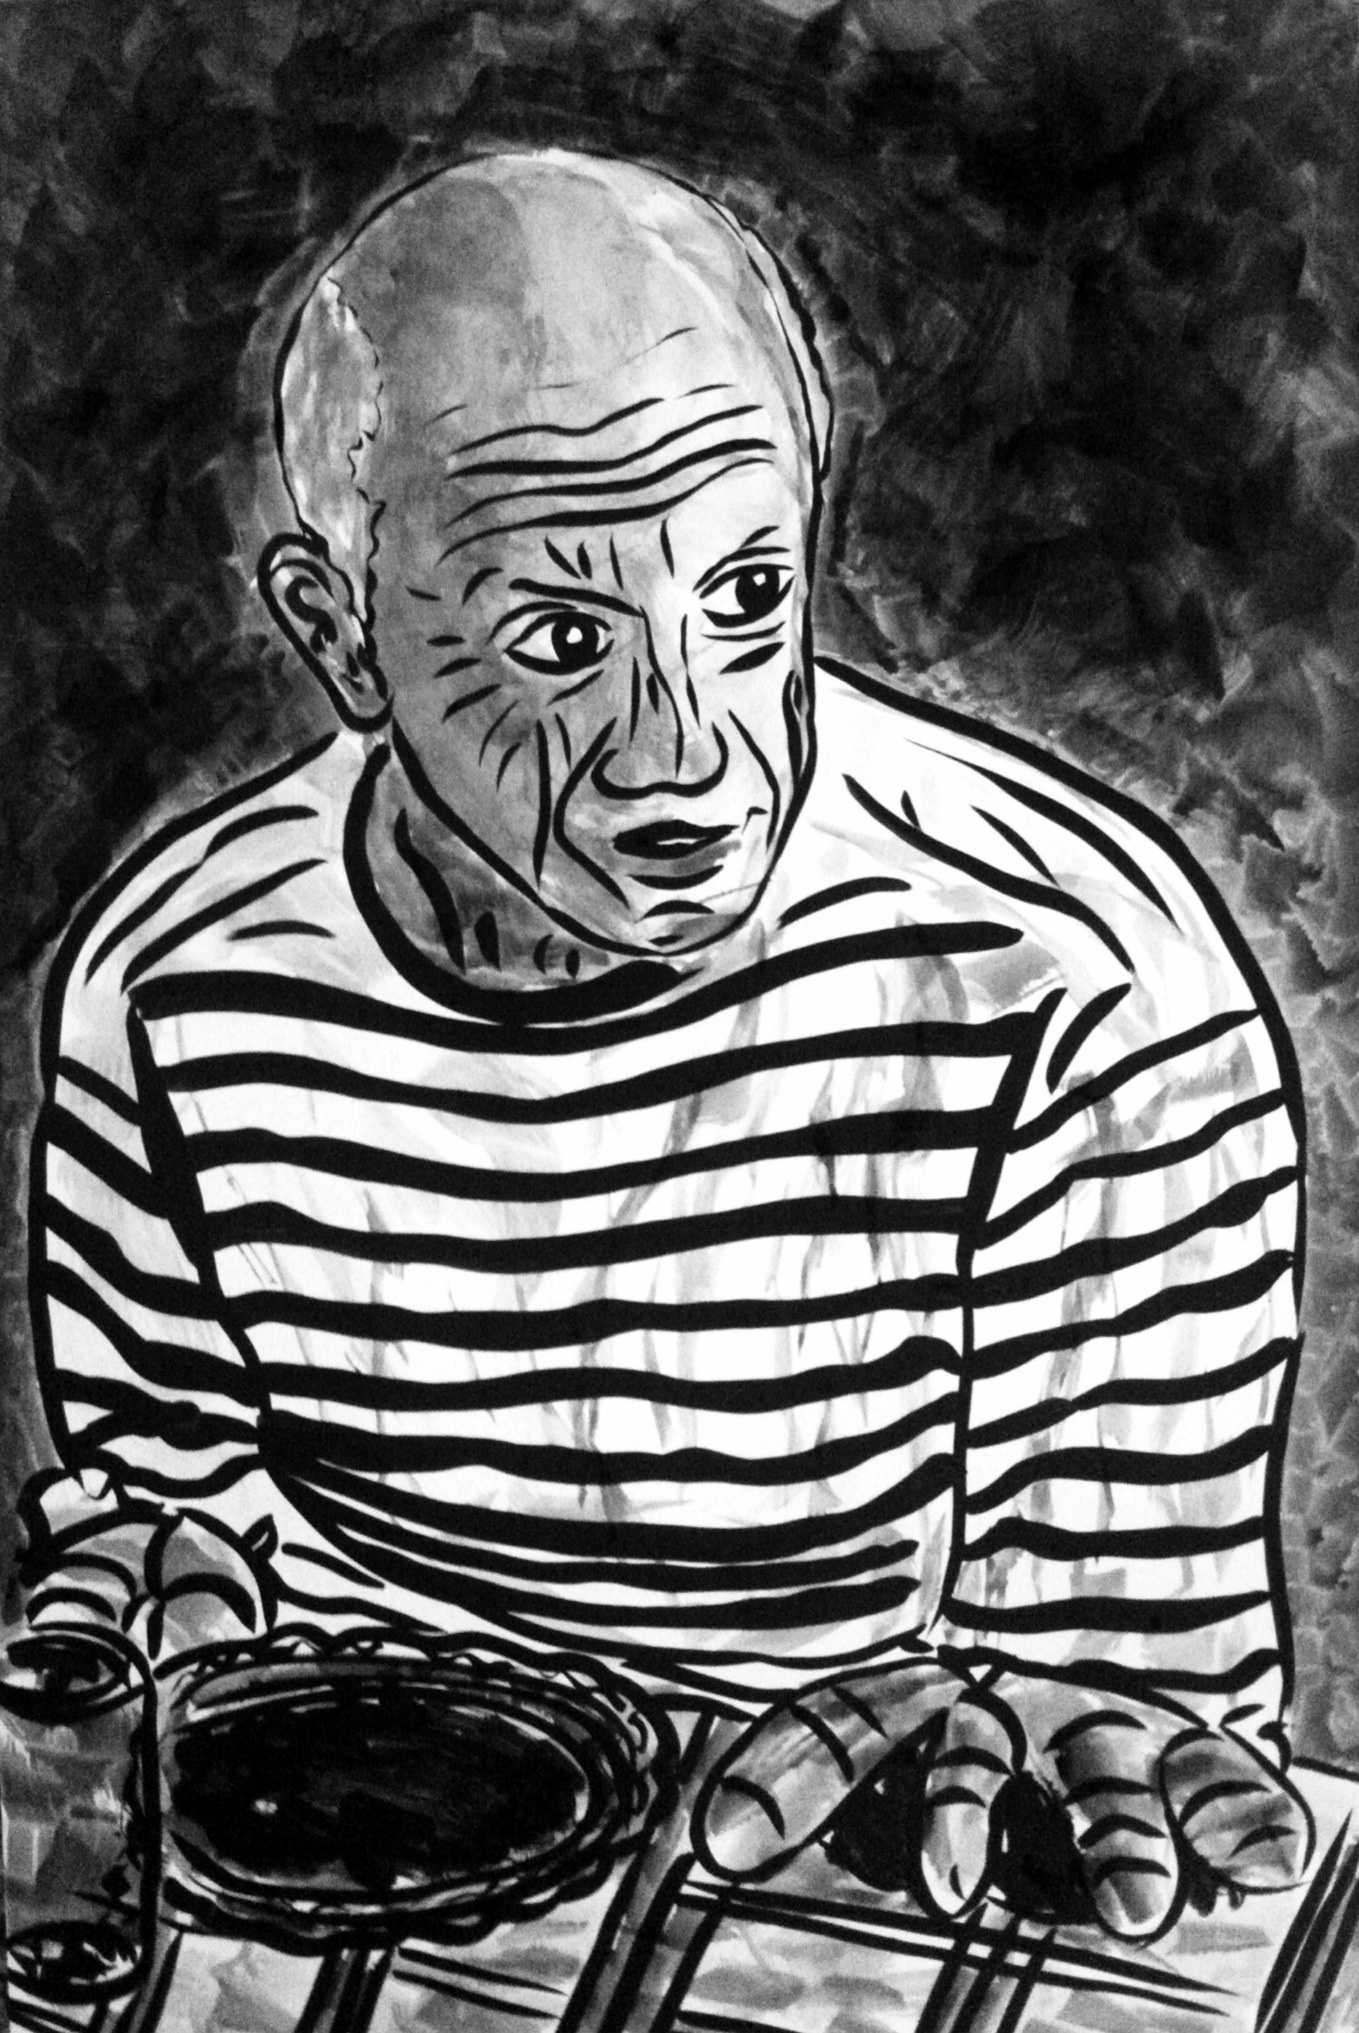 picasso-5.jpg